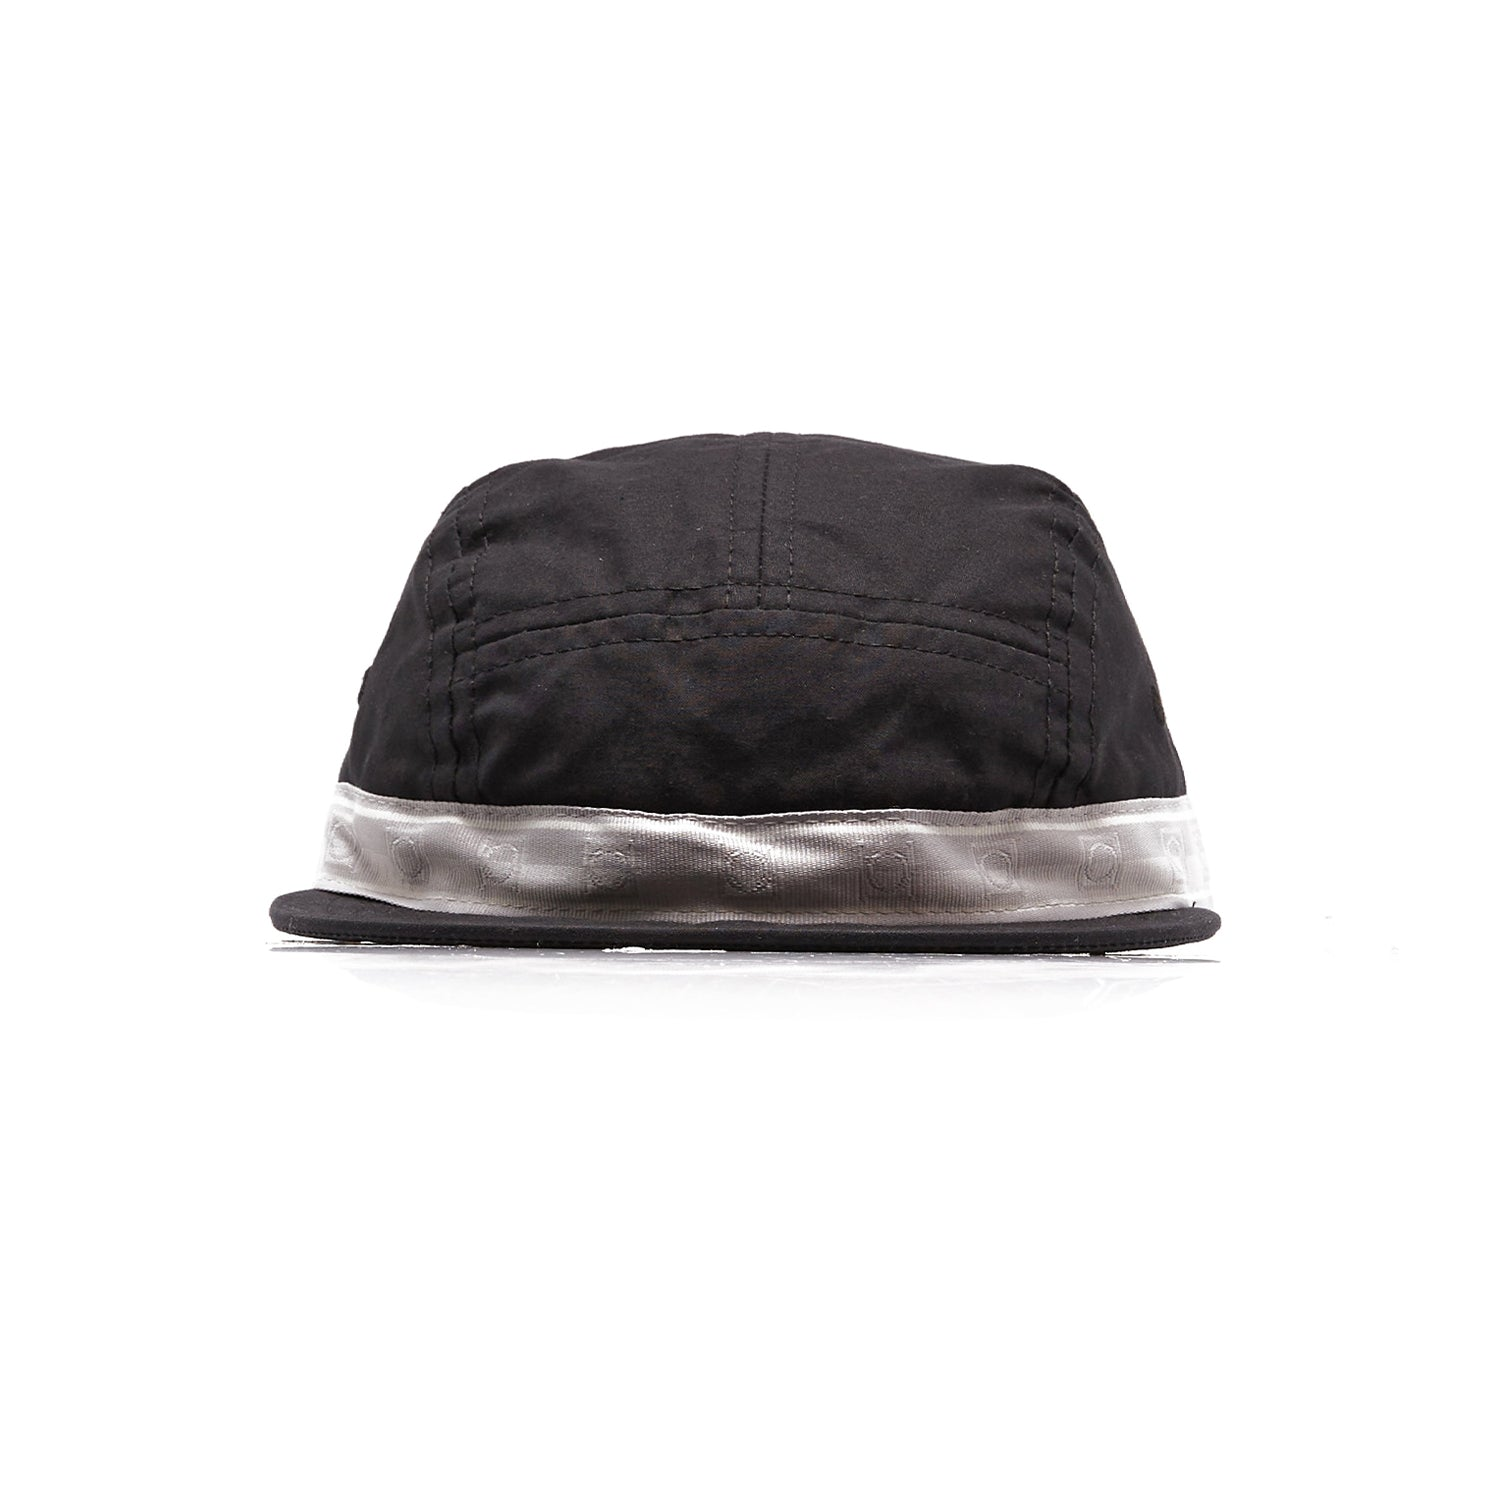 Five Panel Cap - Black